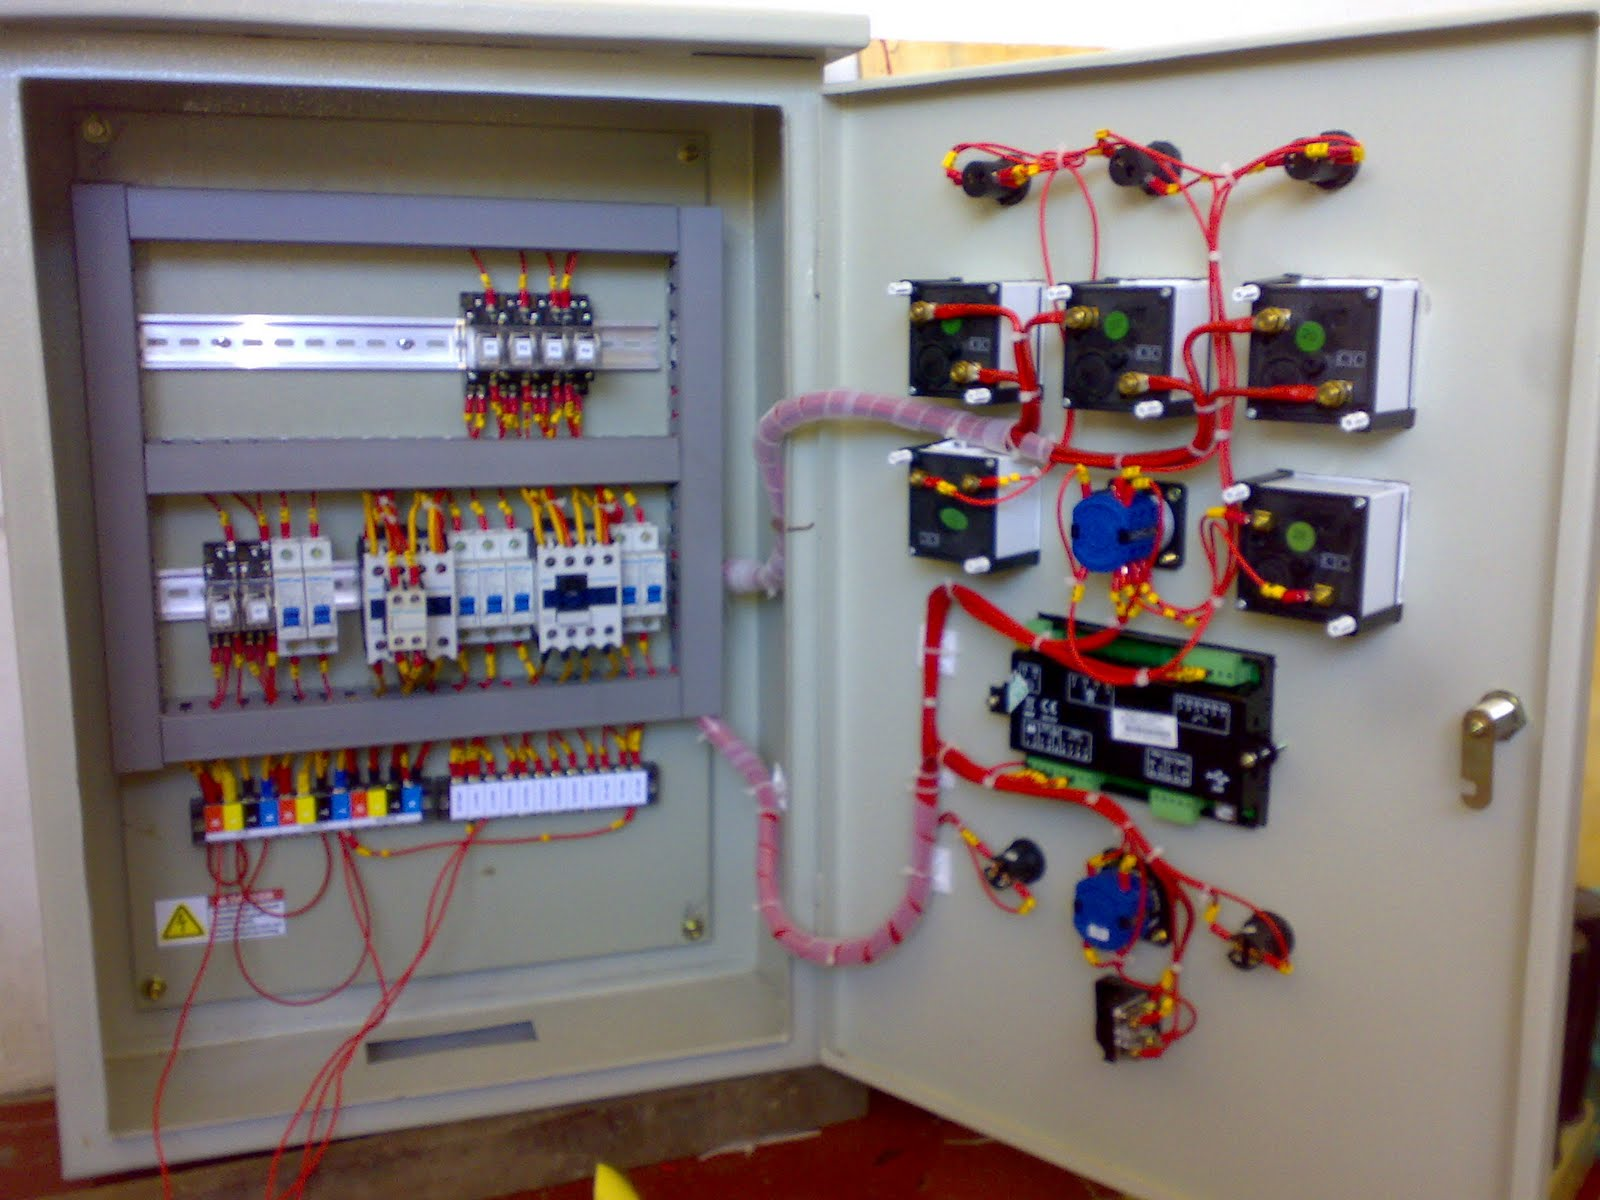 Pemilihan Jenis Modul Amf Automatic Main Failure Panel Wiring Diagram Ats 100kva